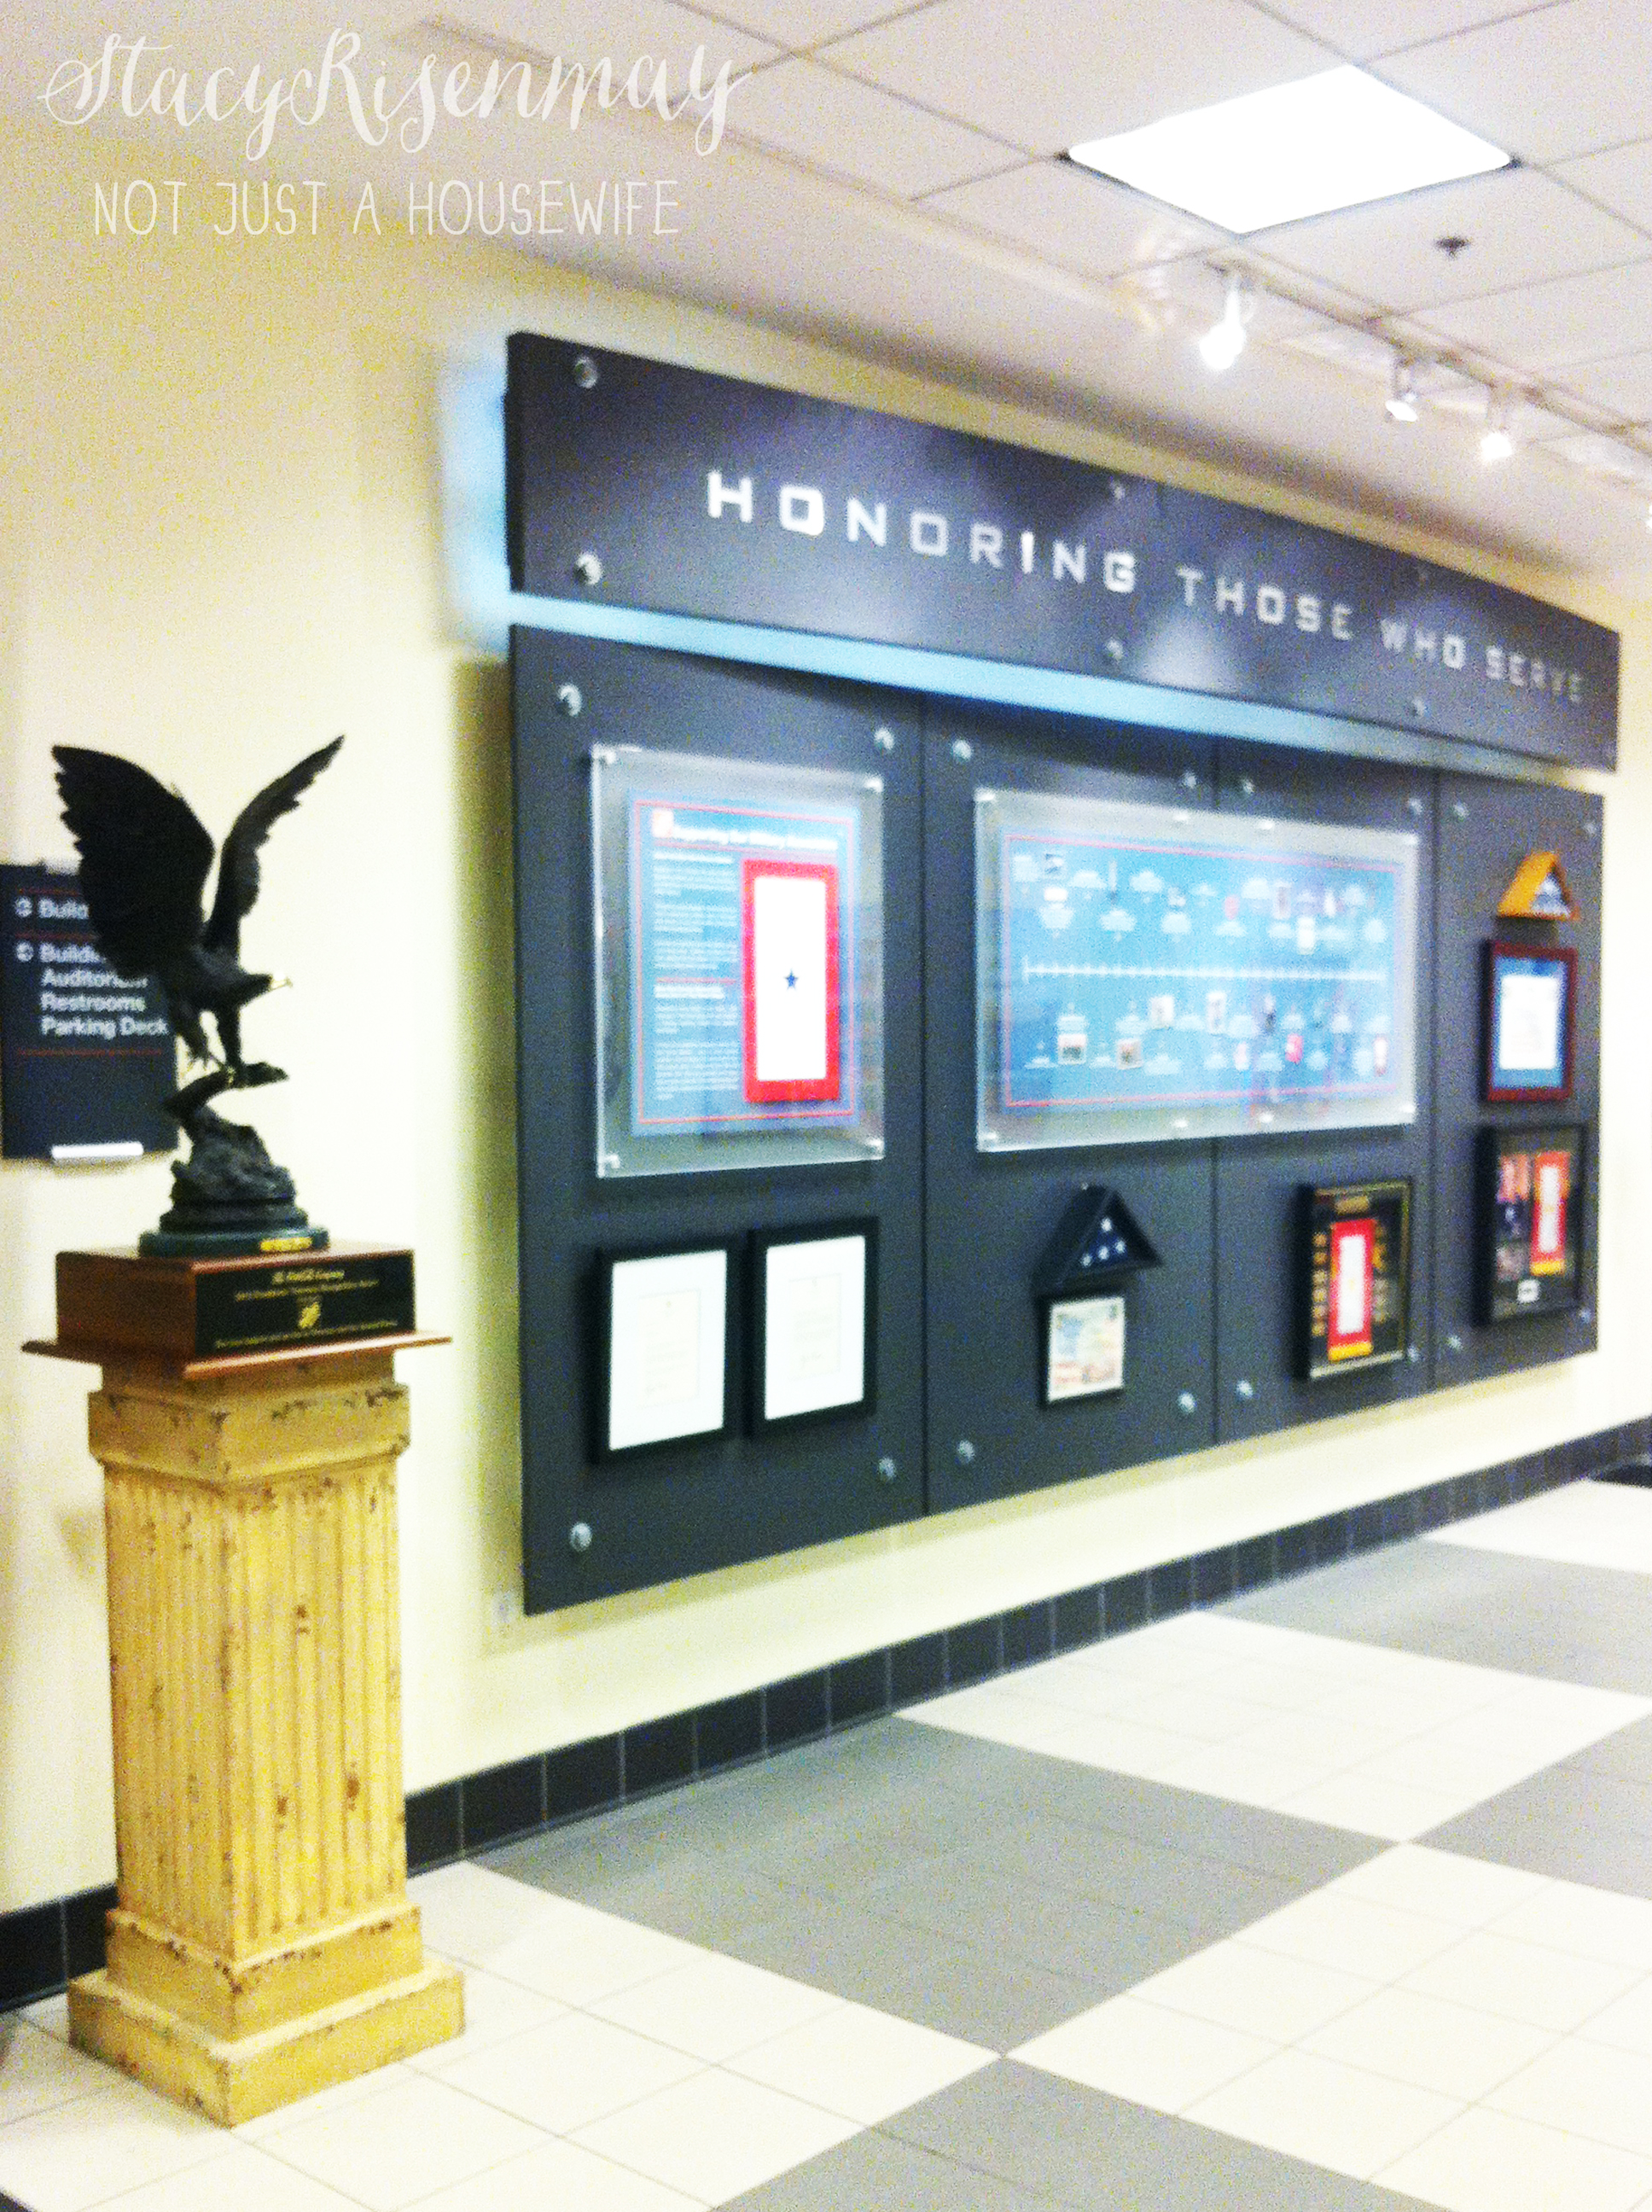 A Glimpse Inside Home Depot Headquarters - Stacy Risenmay